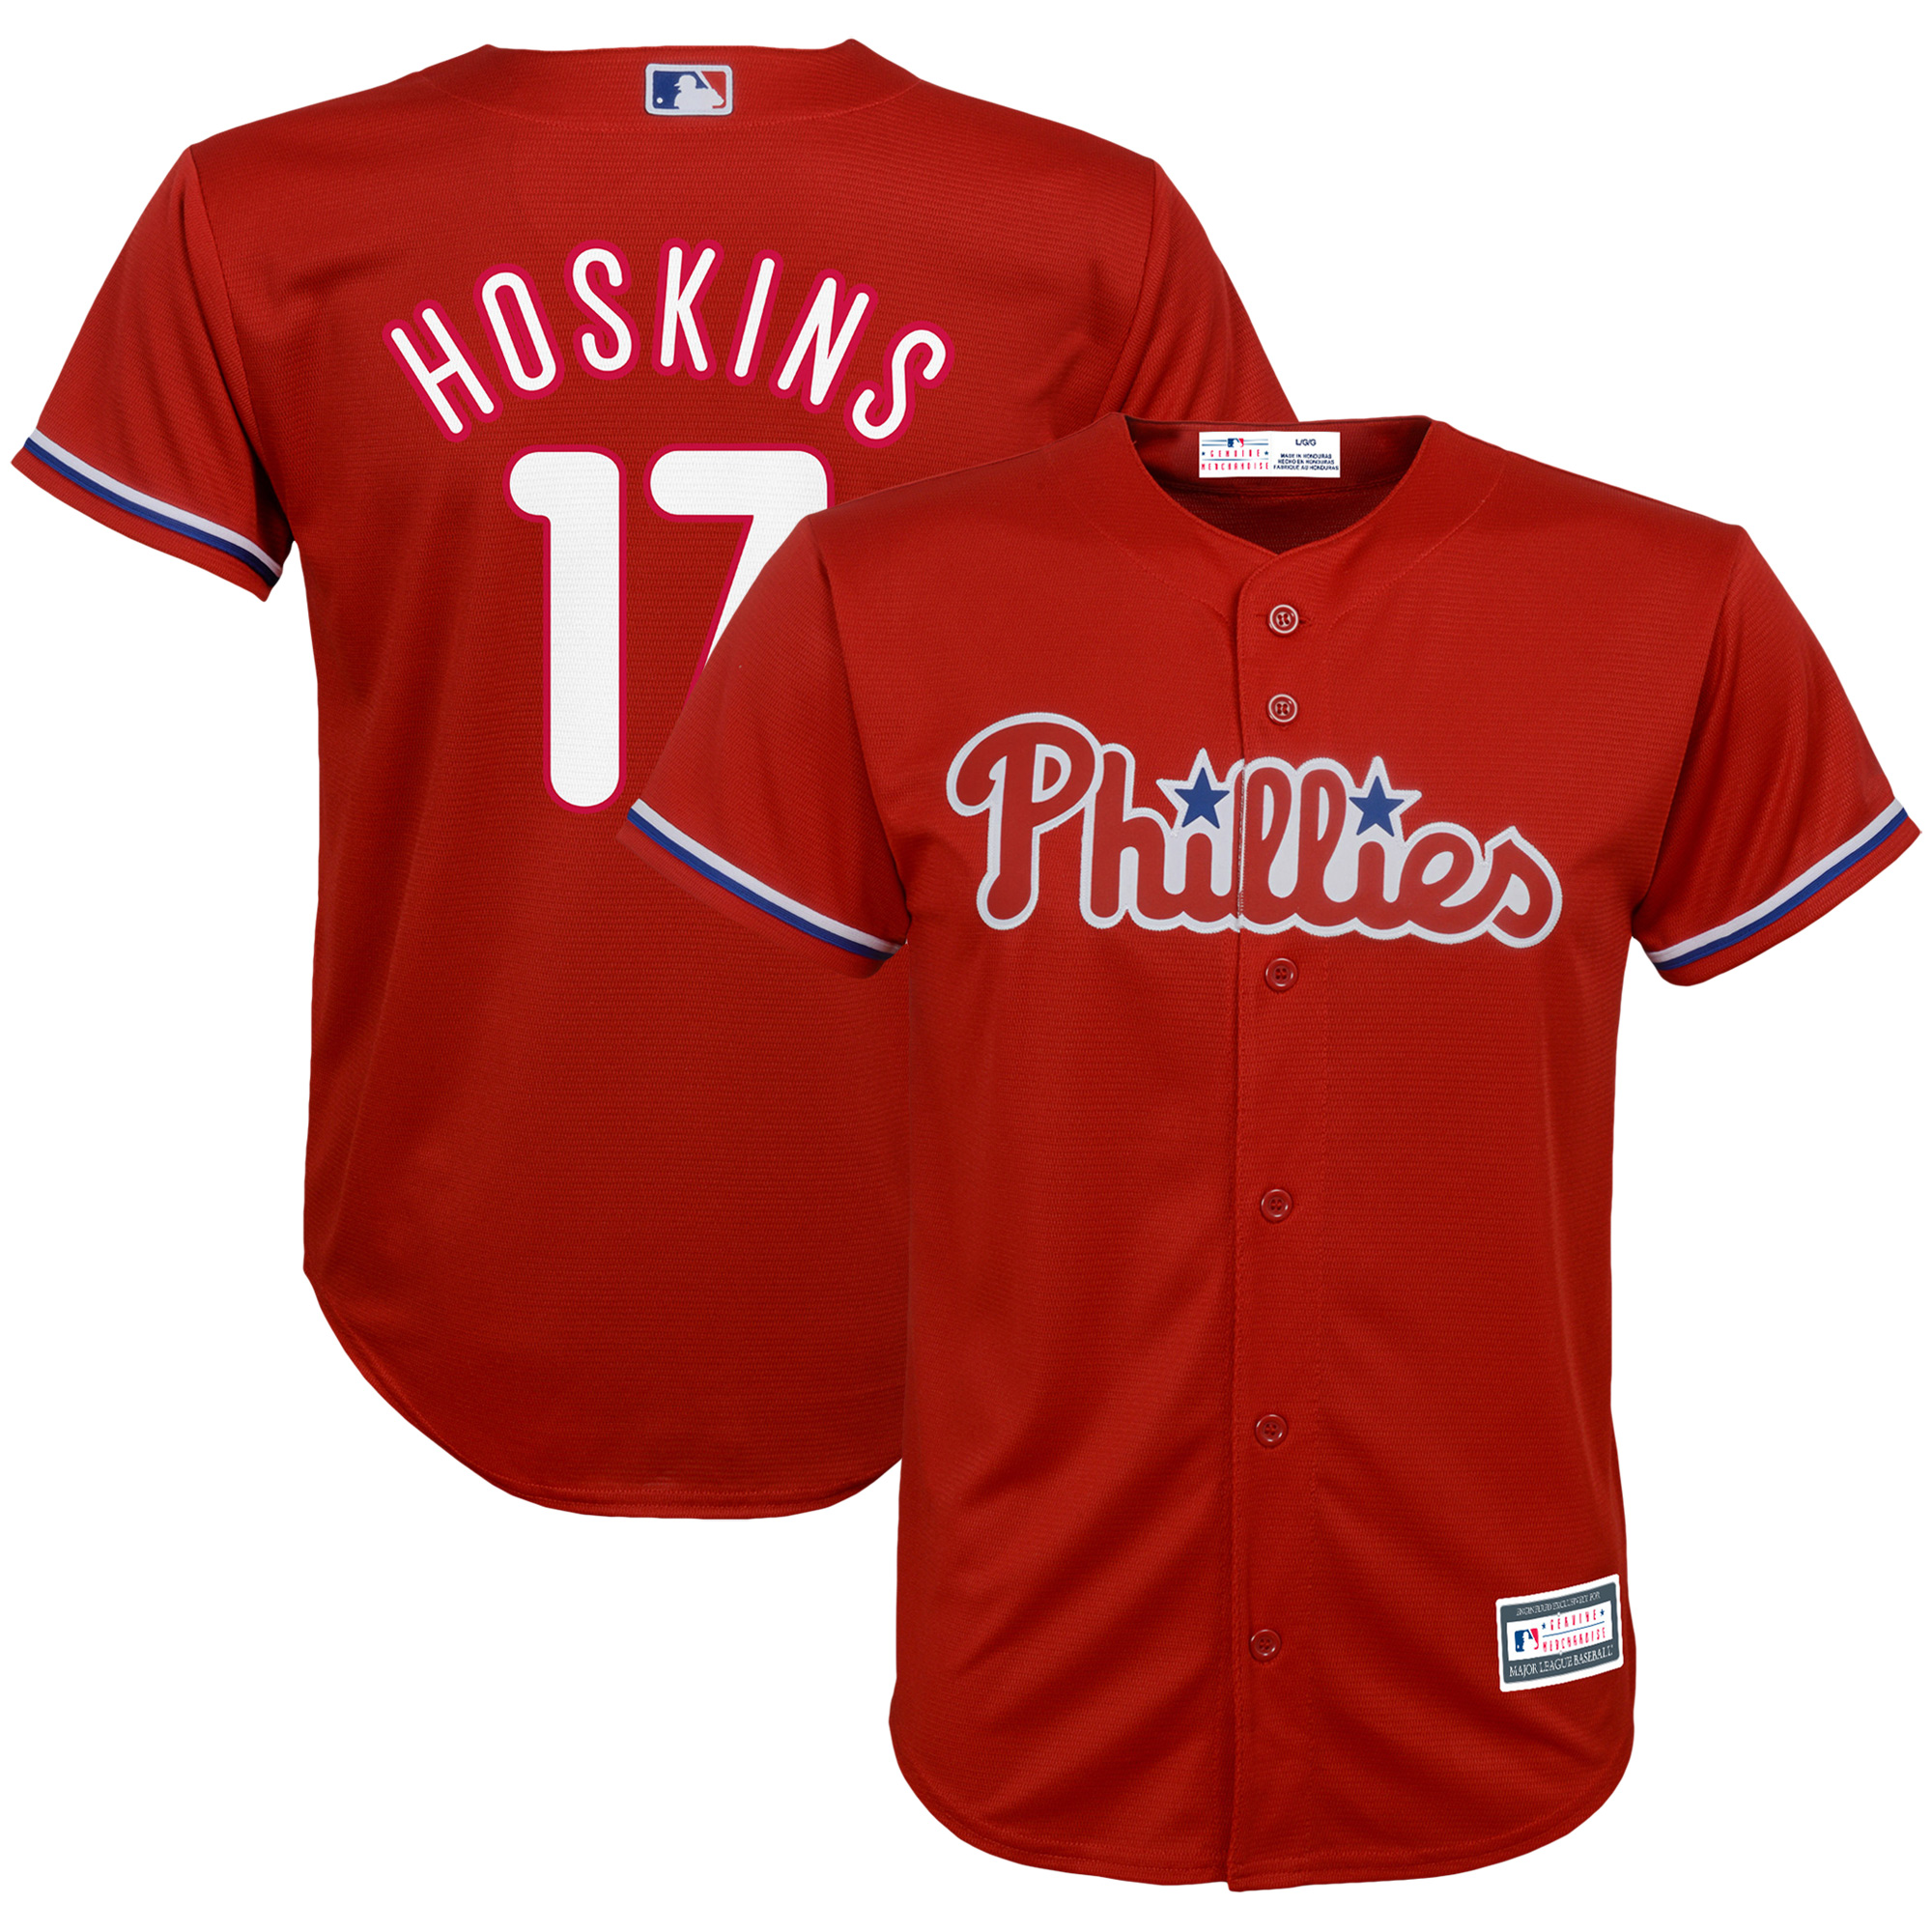 Rhys Hoskins Philadelphia Phillies Youth Player Replica Jersey - Red